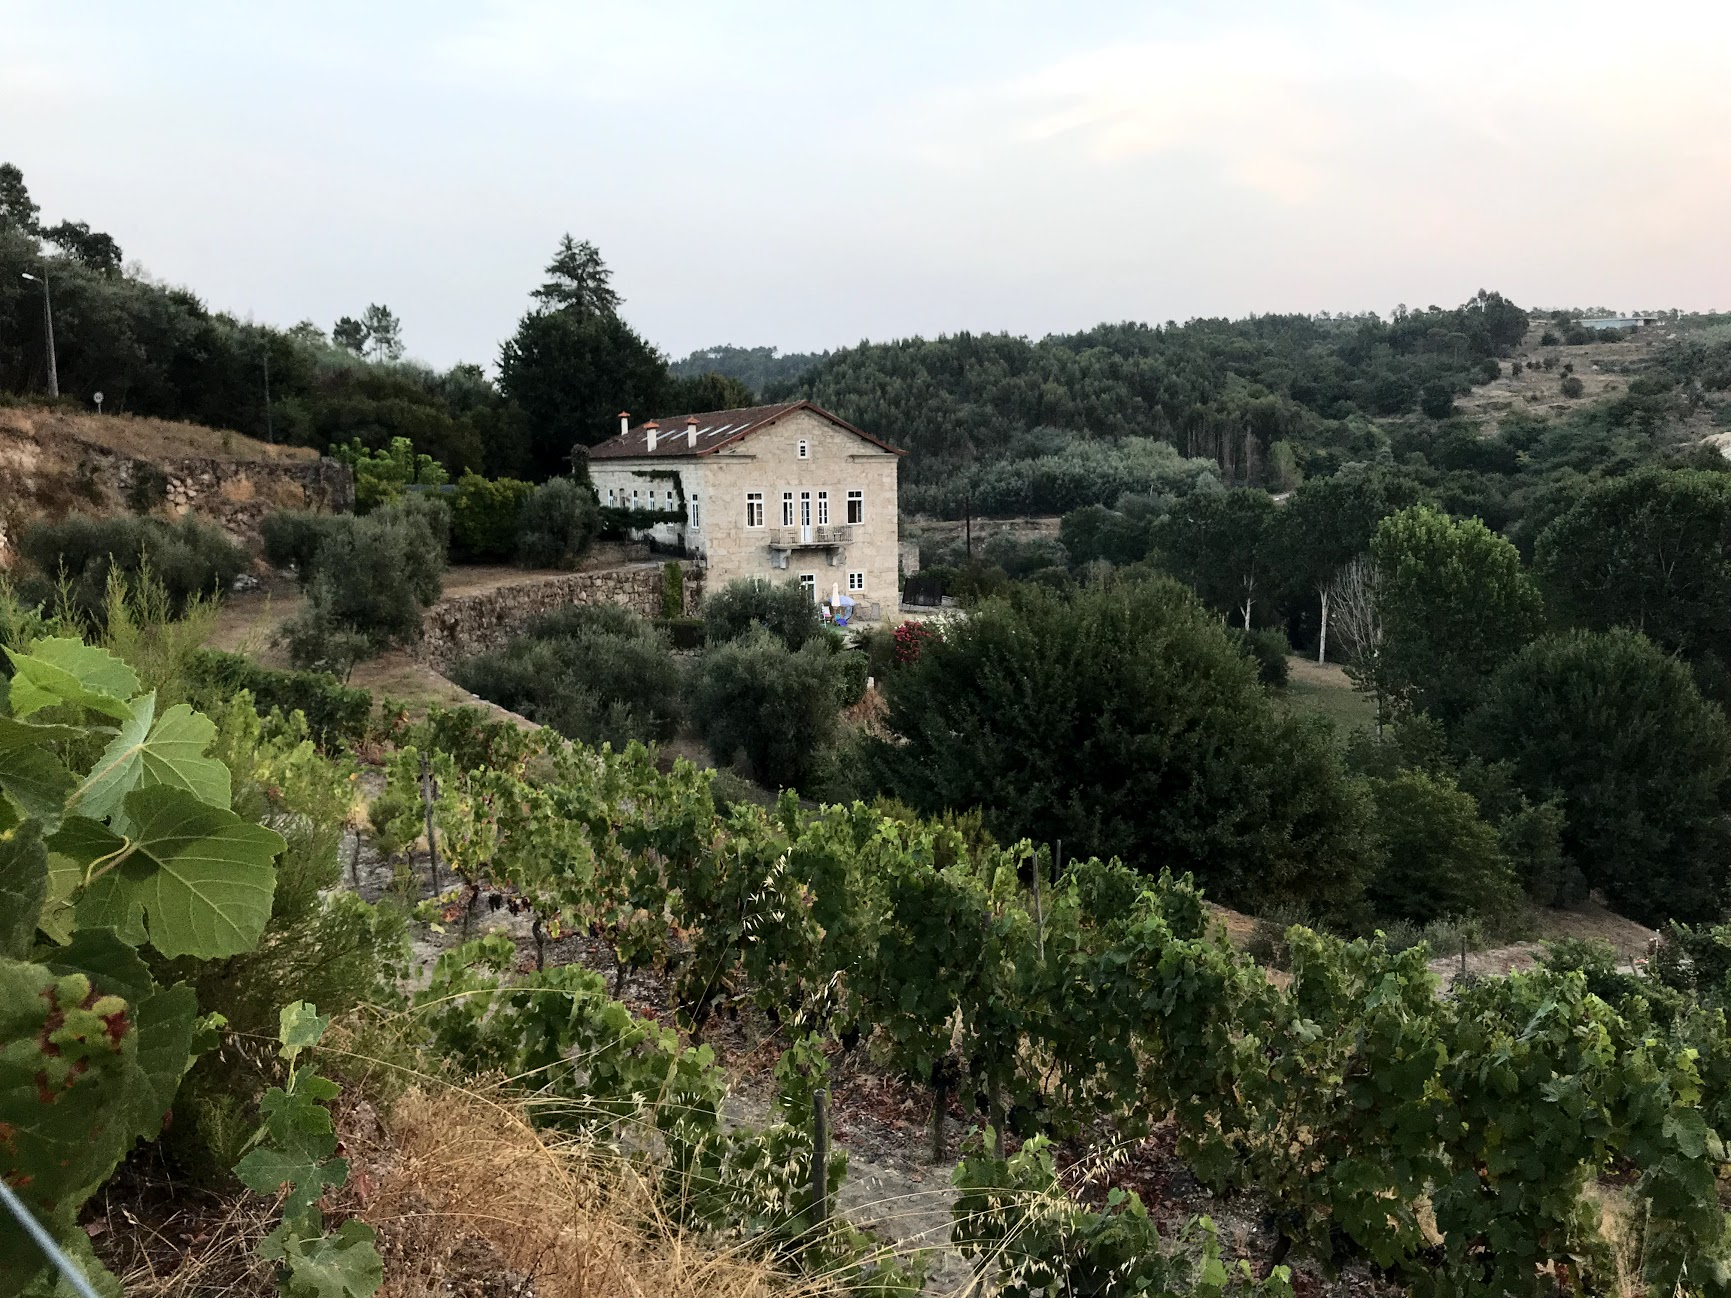 View from the vineyard to the house